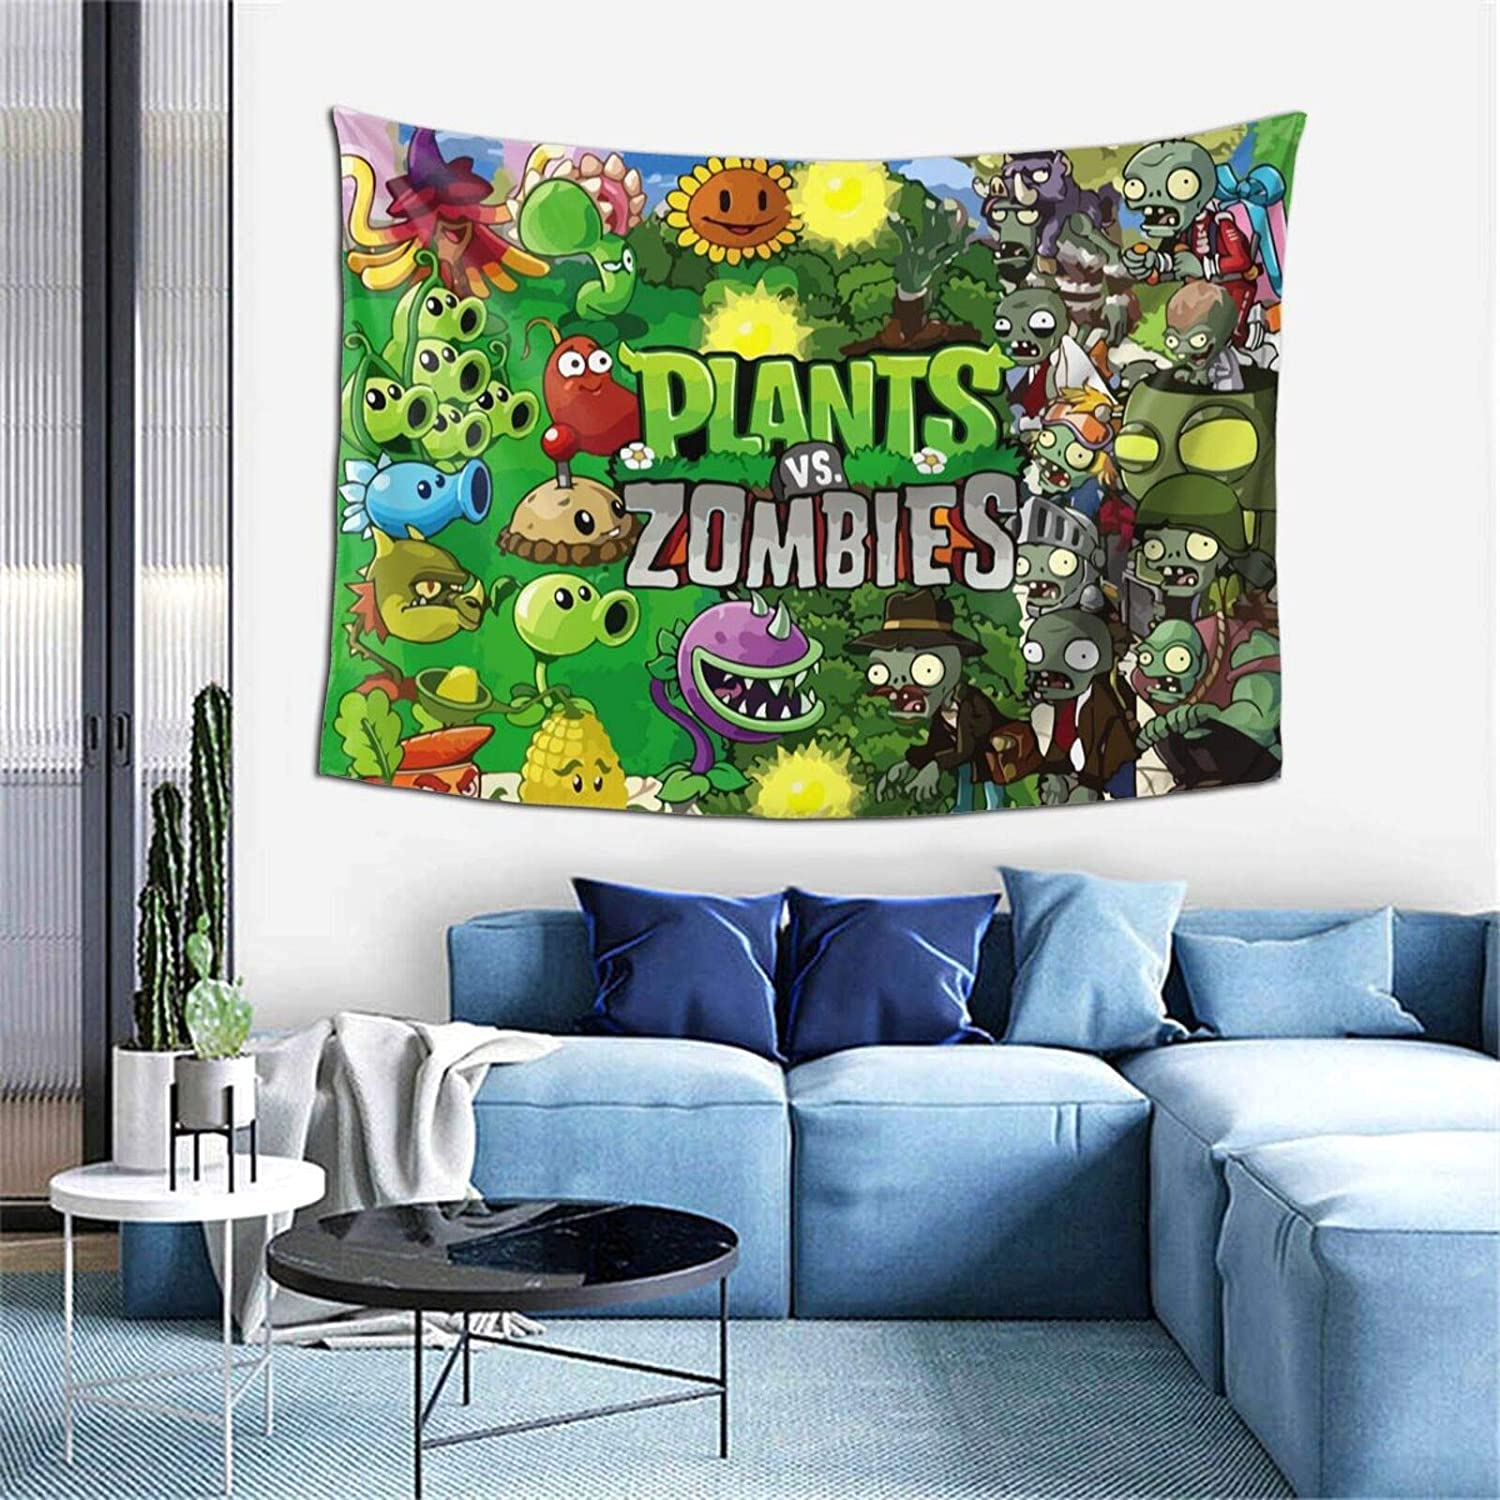 Vividuke Plants Vs Zom-bies Tapestry Light Weight Soft Wall Hanging Tapestries Wall Blanket Wall Art for Outdoor Indoor Bedroom Living Room Dorm Decor One Size